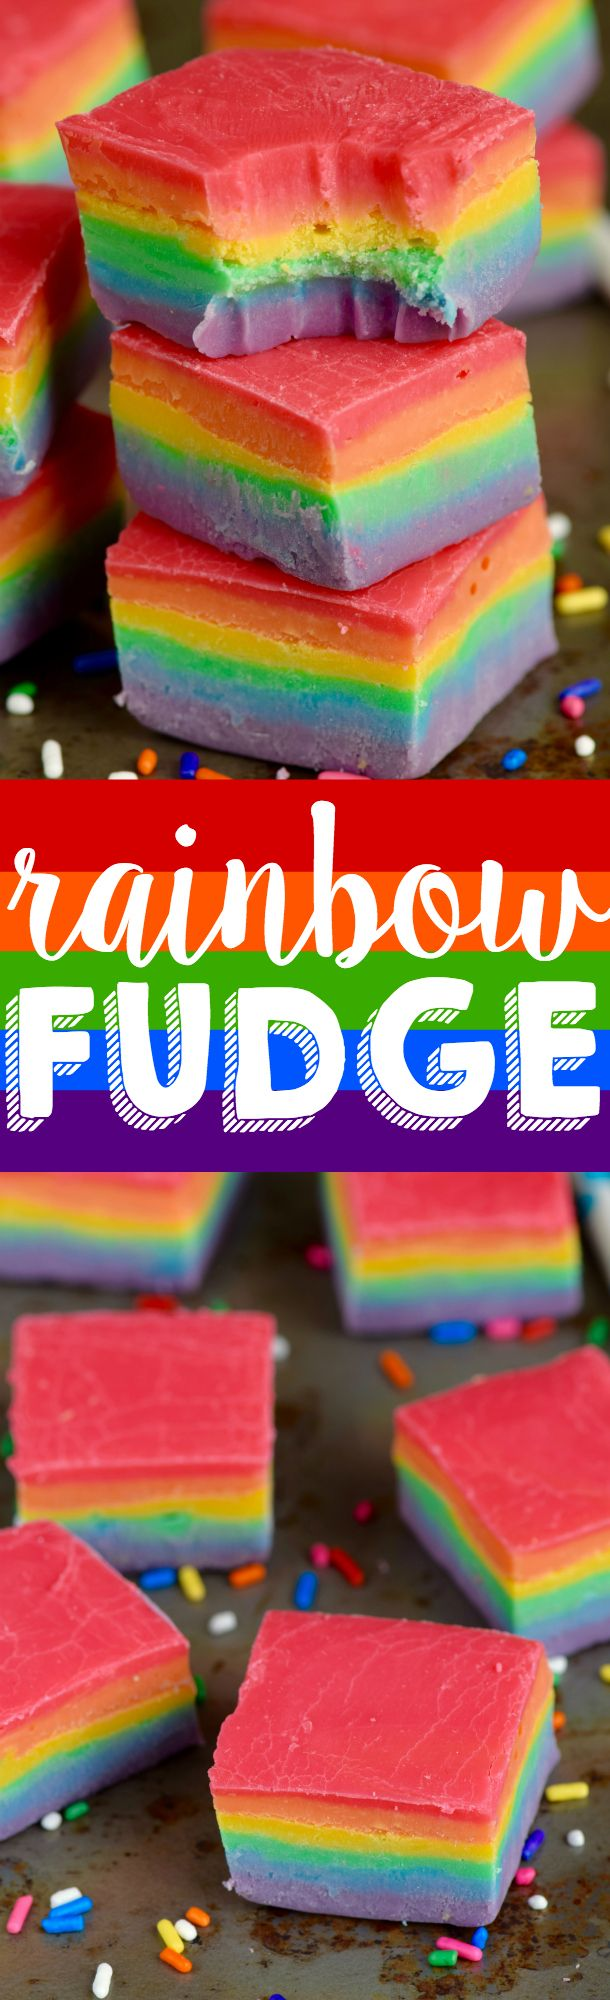 DIY : Rainbow Fudge in the Group Board ♥ CREATIVE and ORIGINAL FOOD (KIDS preferably) http://www.pinterest.com/yourfrenchtouch/creative-and-original-food-kids-preferably